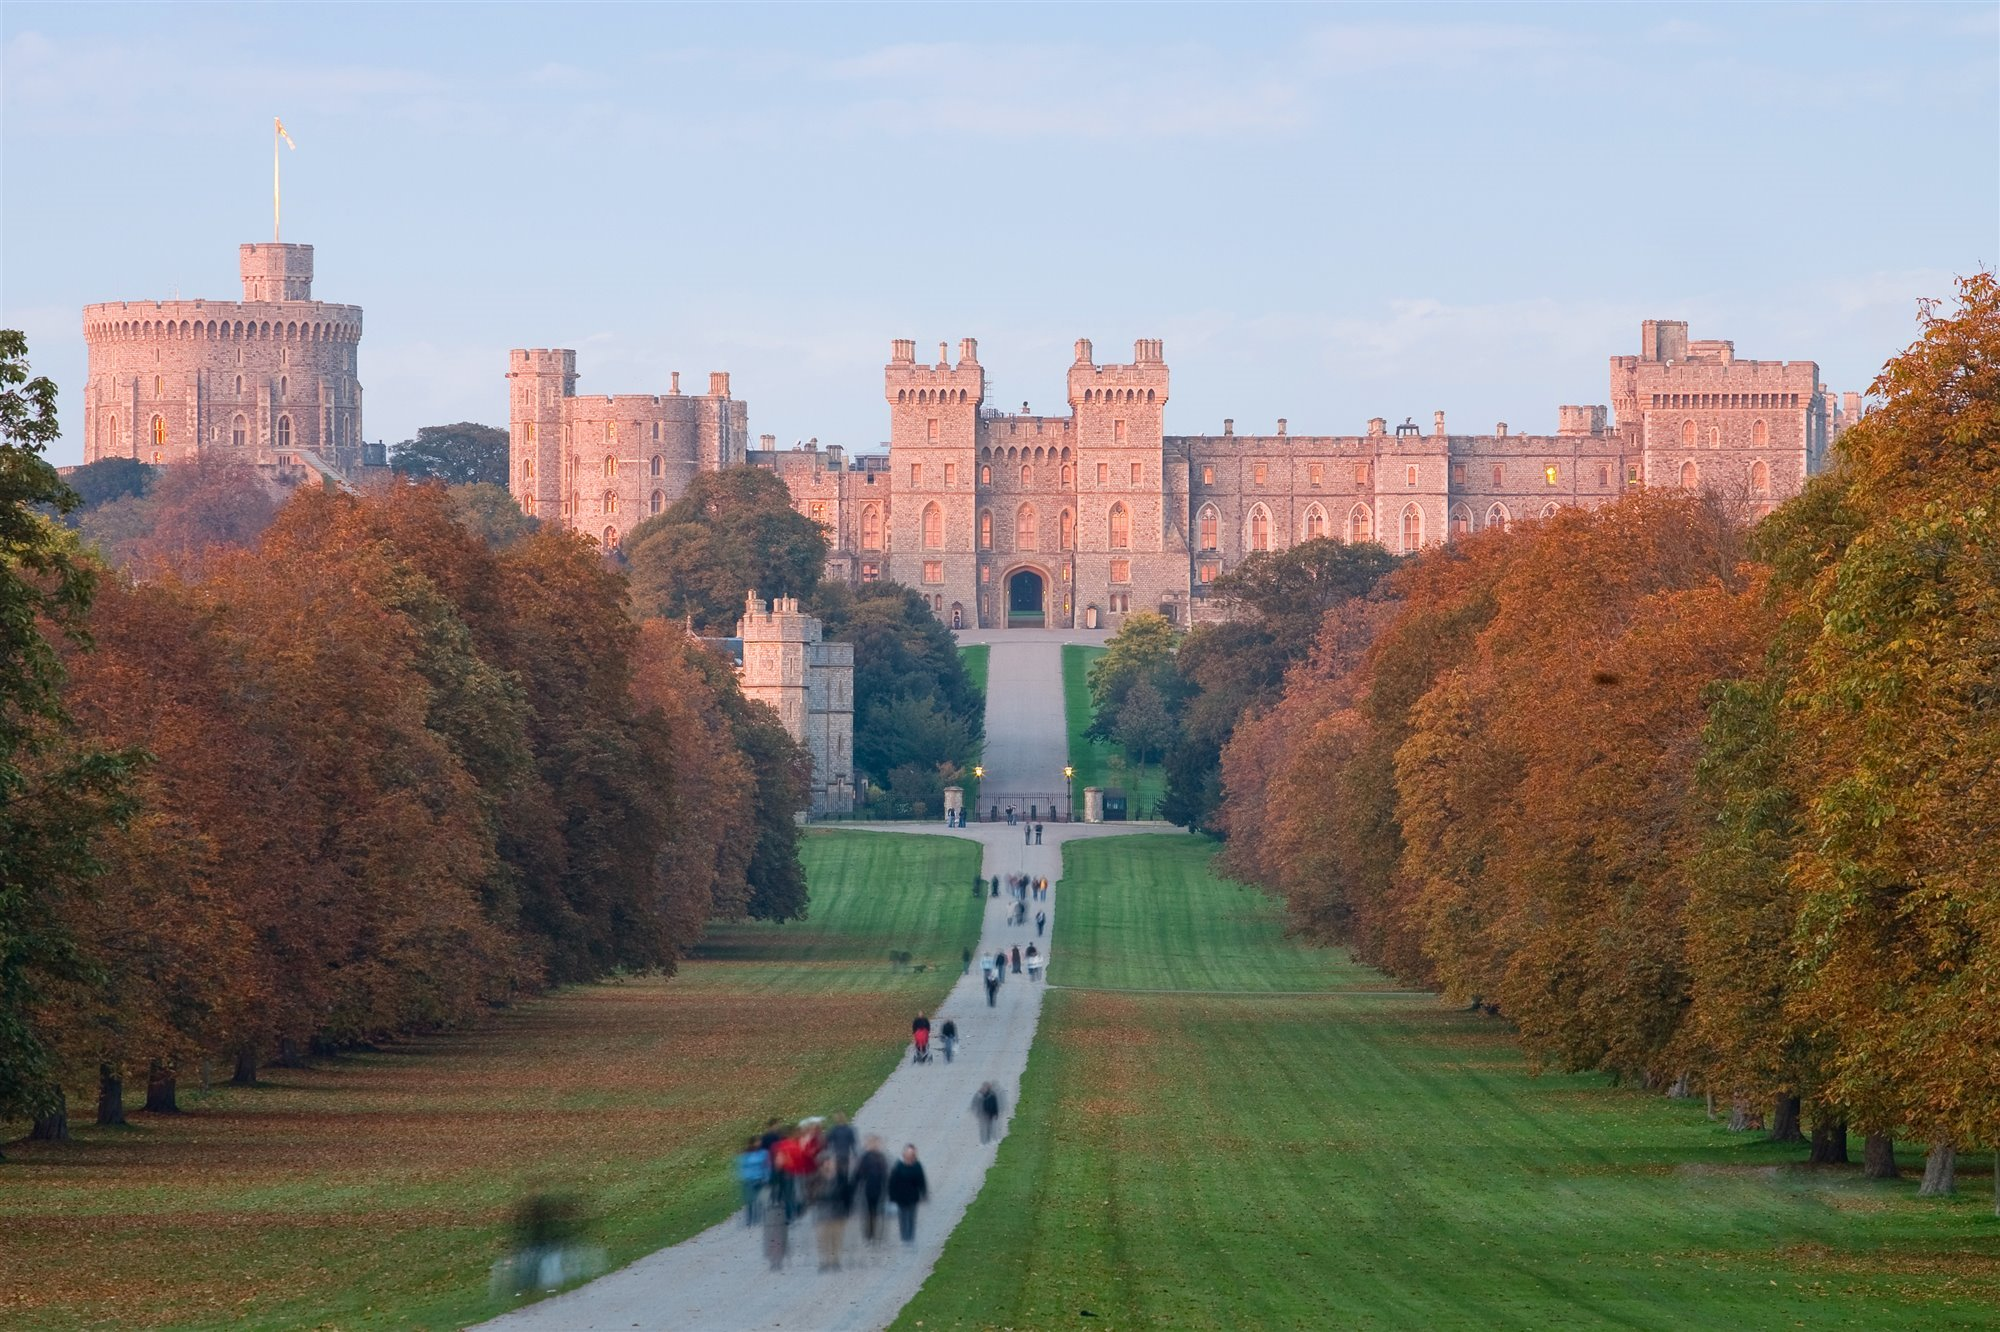 Windsor Castle casas de la reina de Inglaterra. Windsor Castle